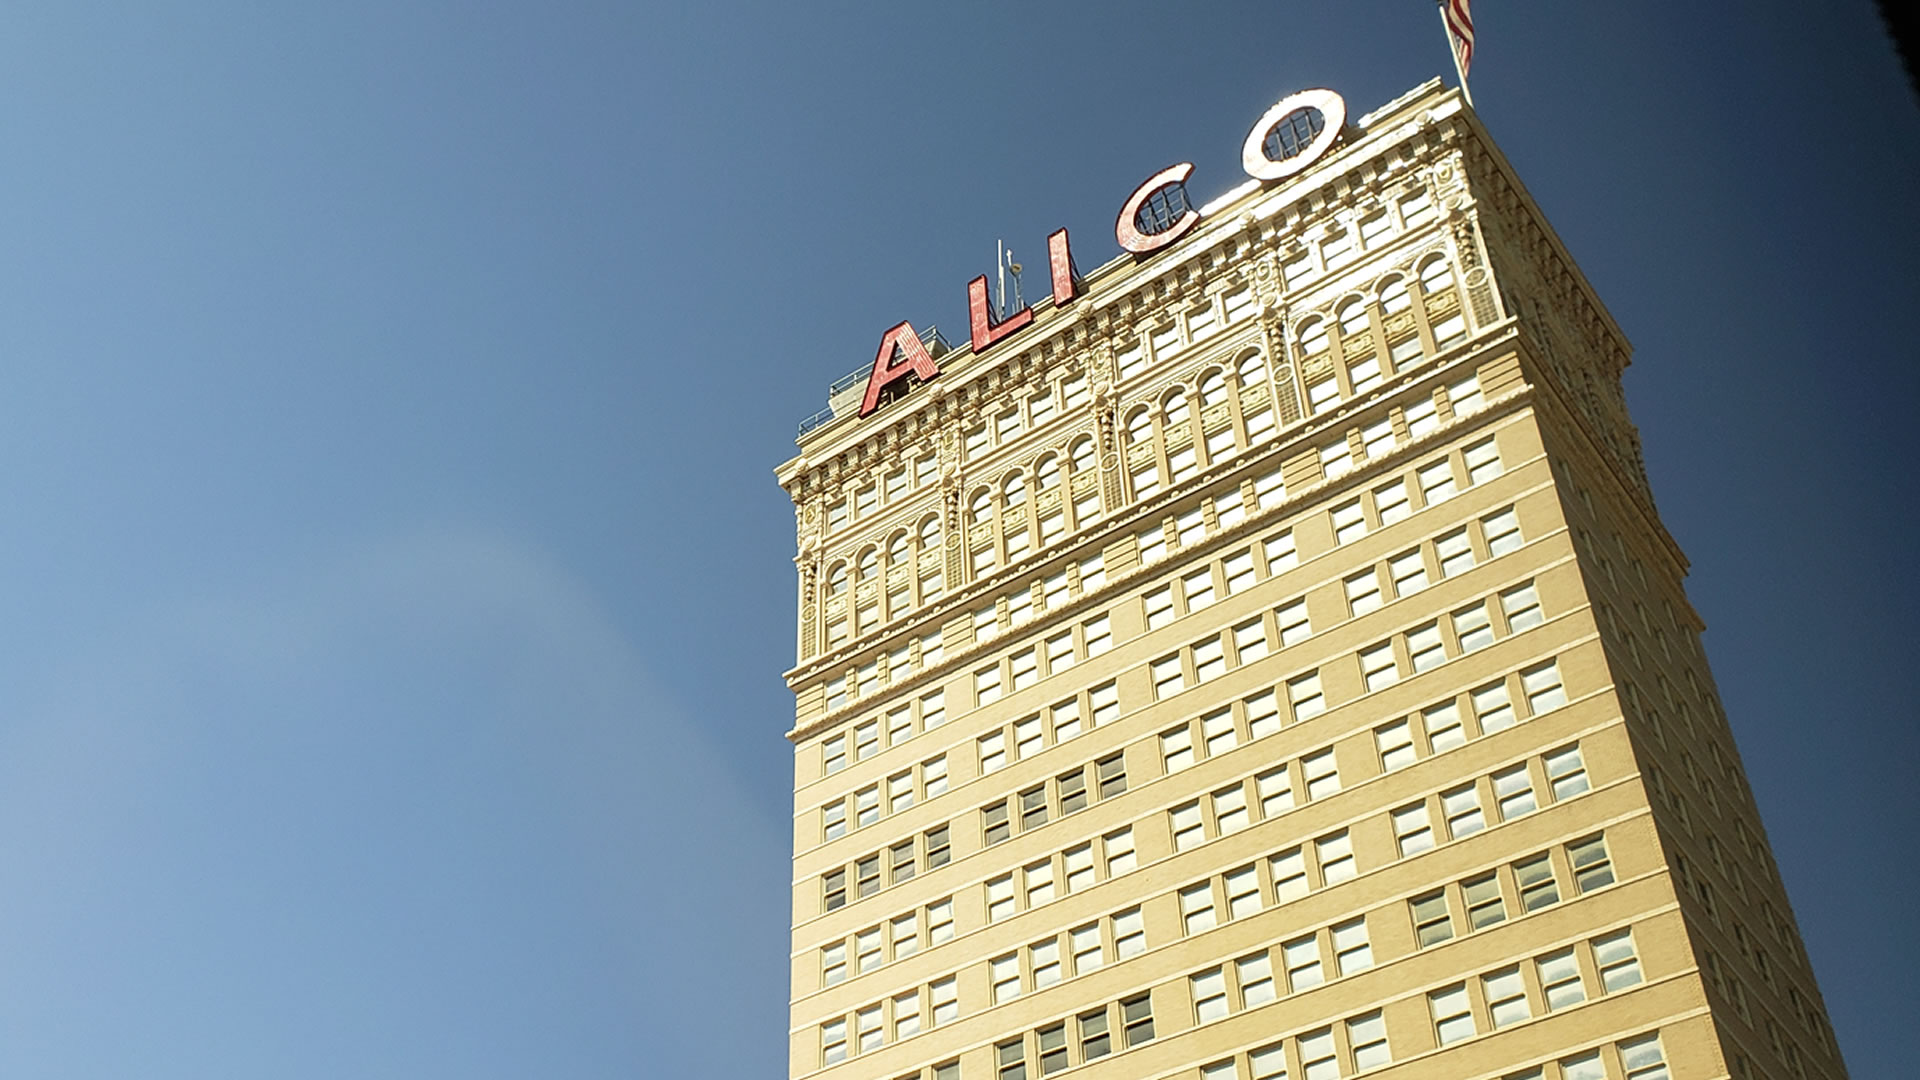 The ALICO Building is a 22-story office building in downtown Waco, Texas, United States, located at the intersection of Austin and 5th Street.